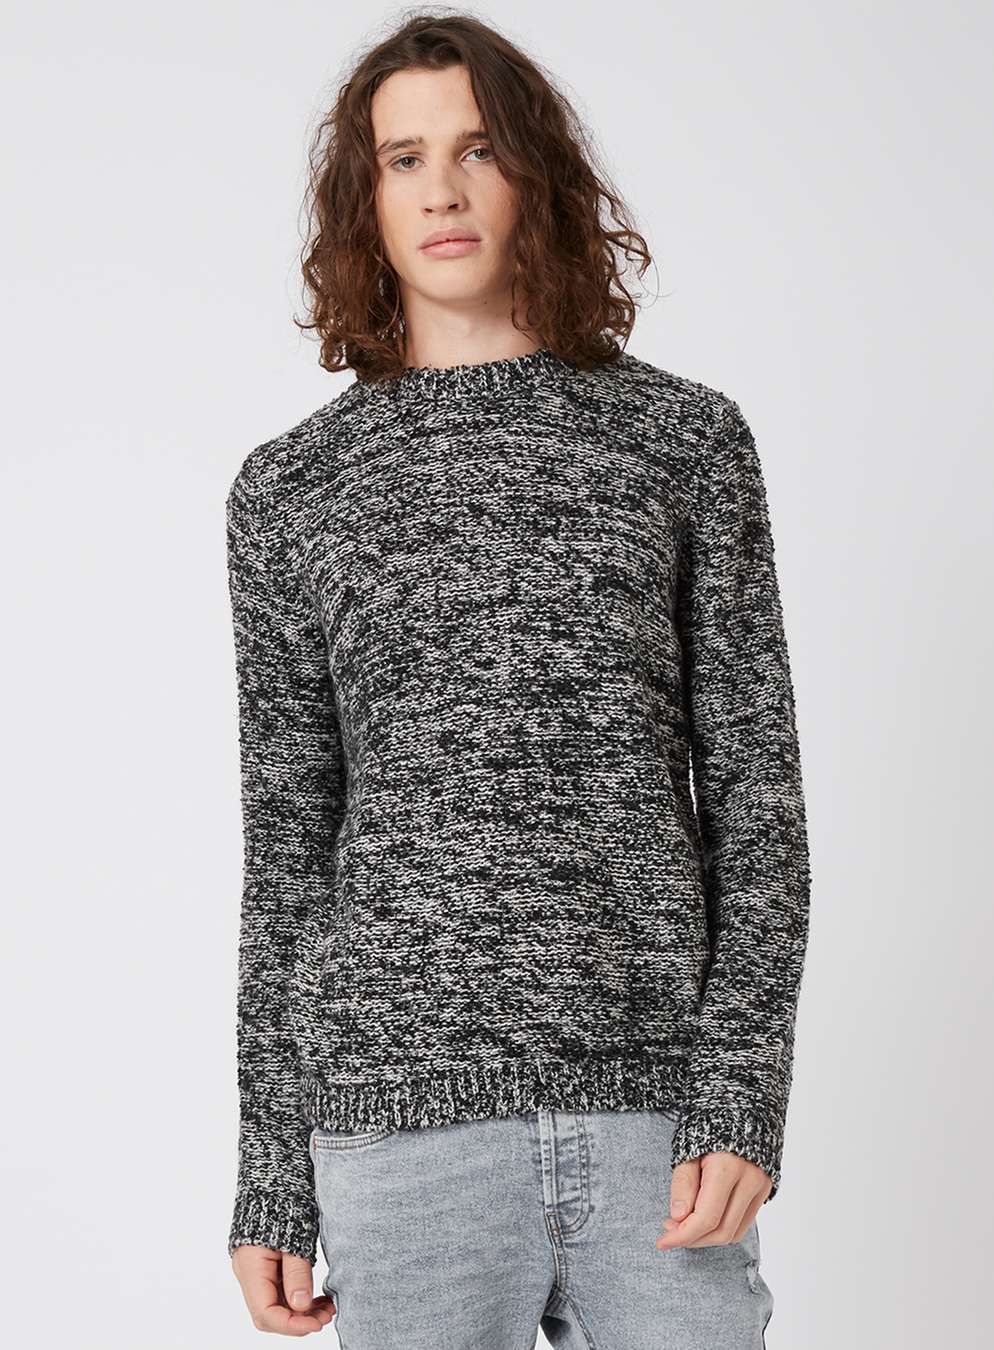 Topman Black And White Fuzzy Texture Slim Fit Jumper